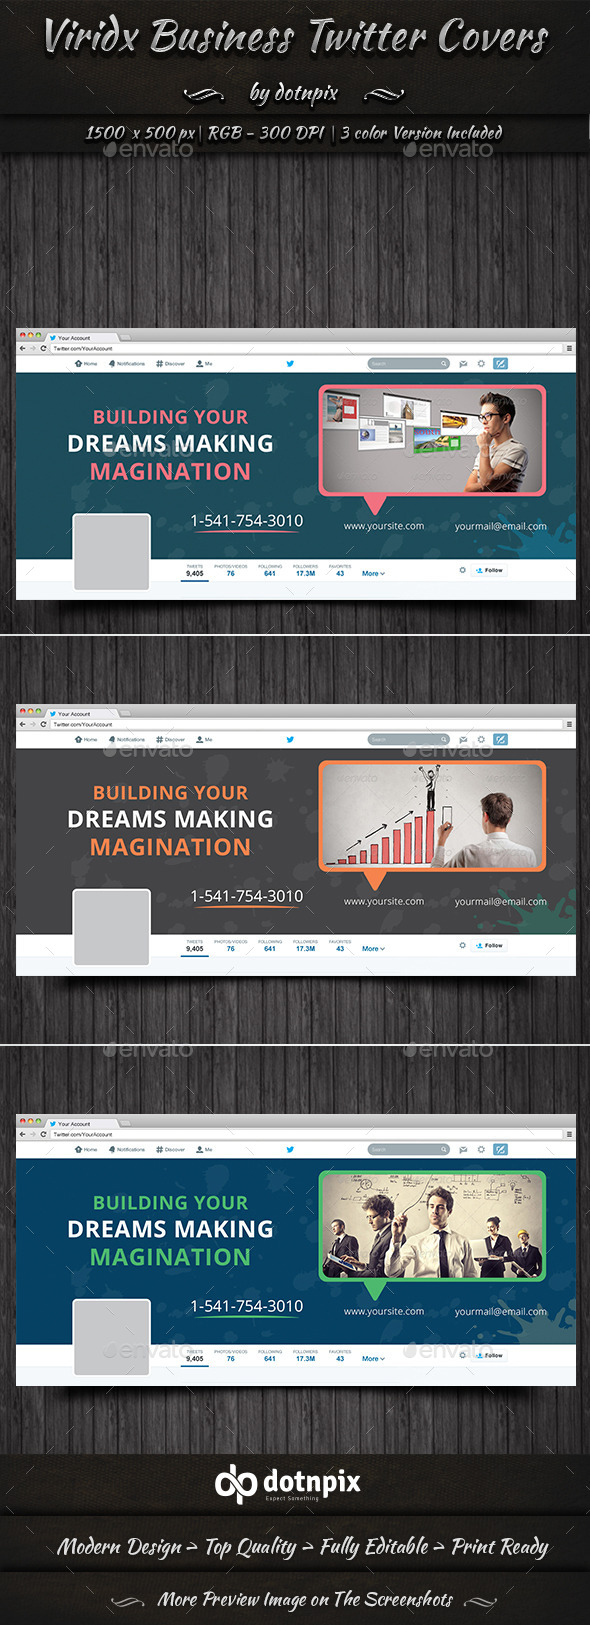 GraphicRiver Viridx Business Twitter Covers 10334846